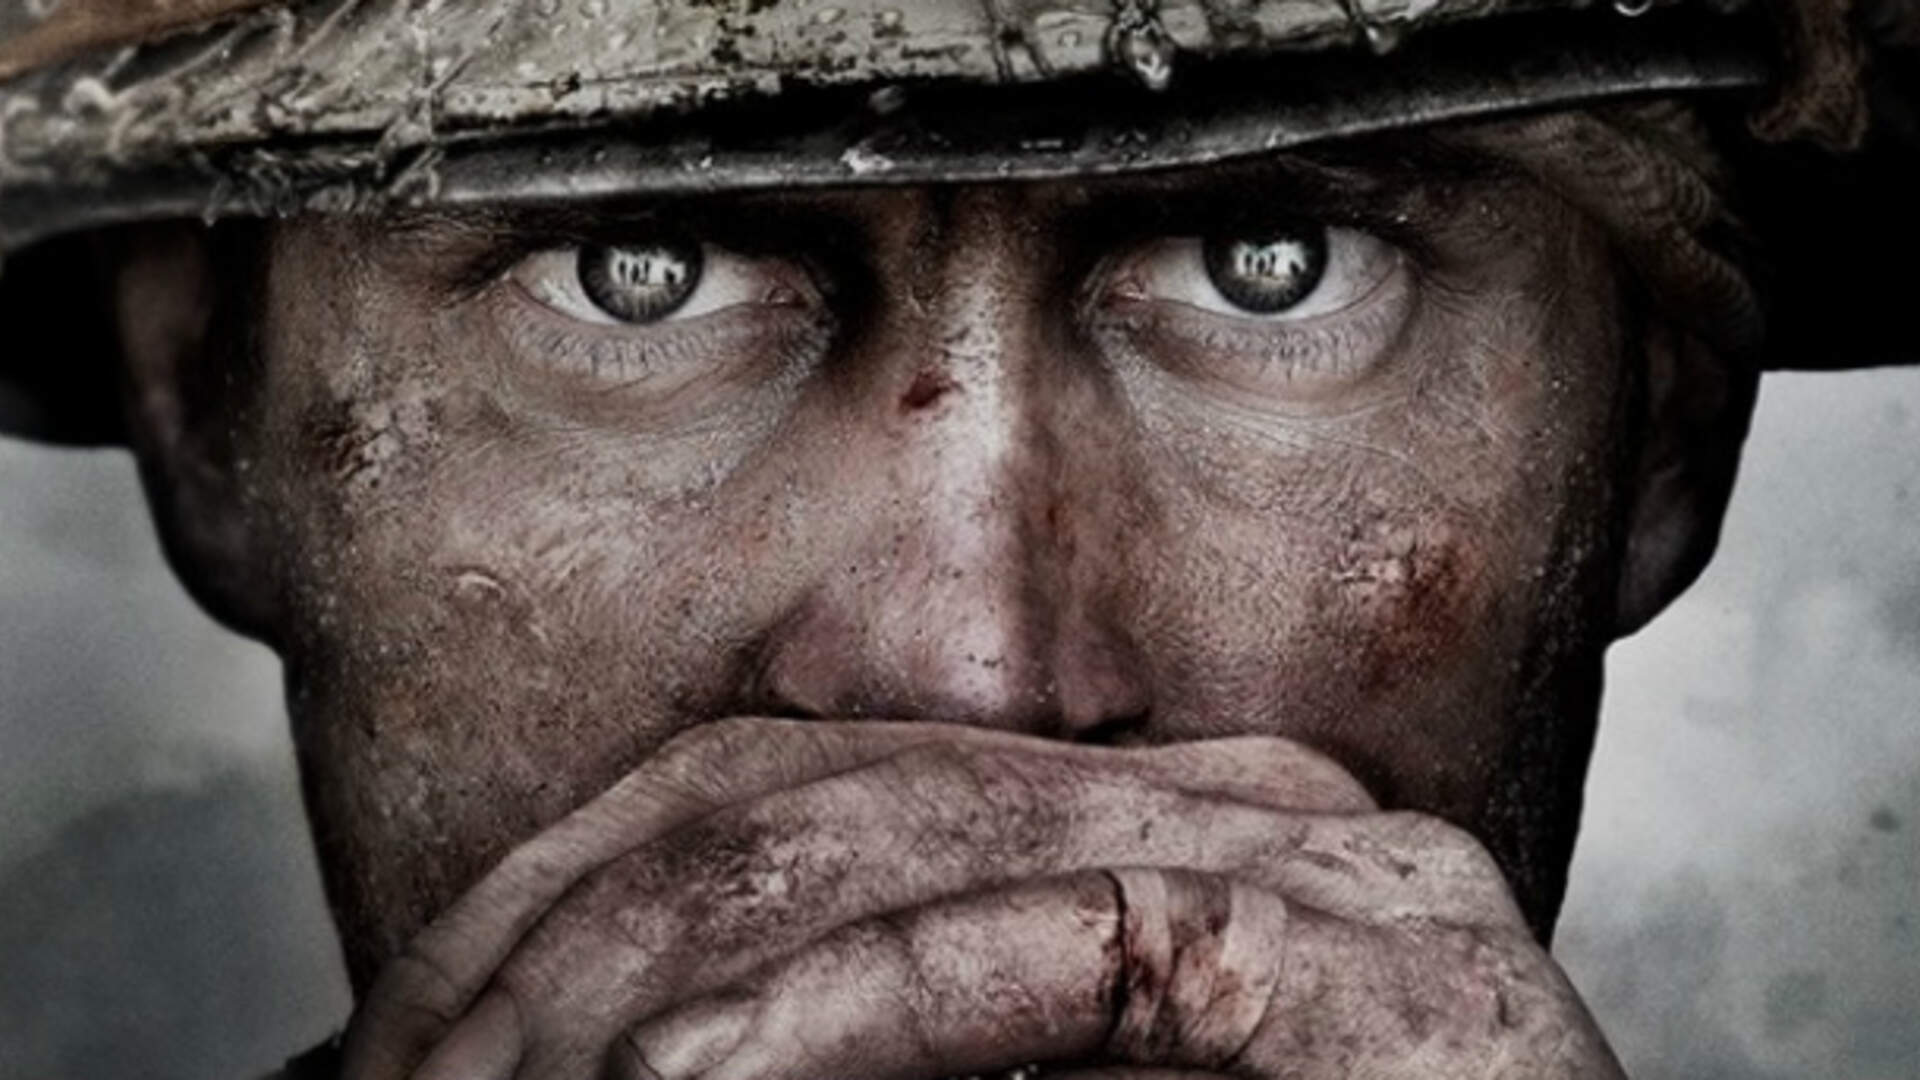 Call of Duty WW2 PS4 Xbox One Review Roundup, Nazi Zombies, Multiplayer, Season Pass, Weapons, Headquarters - Everything We Know